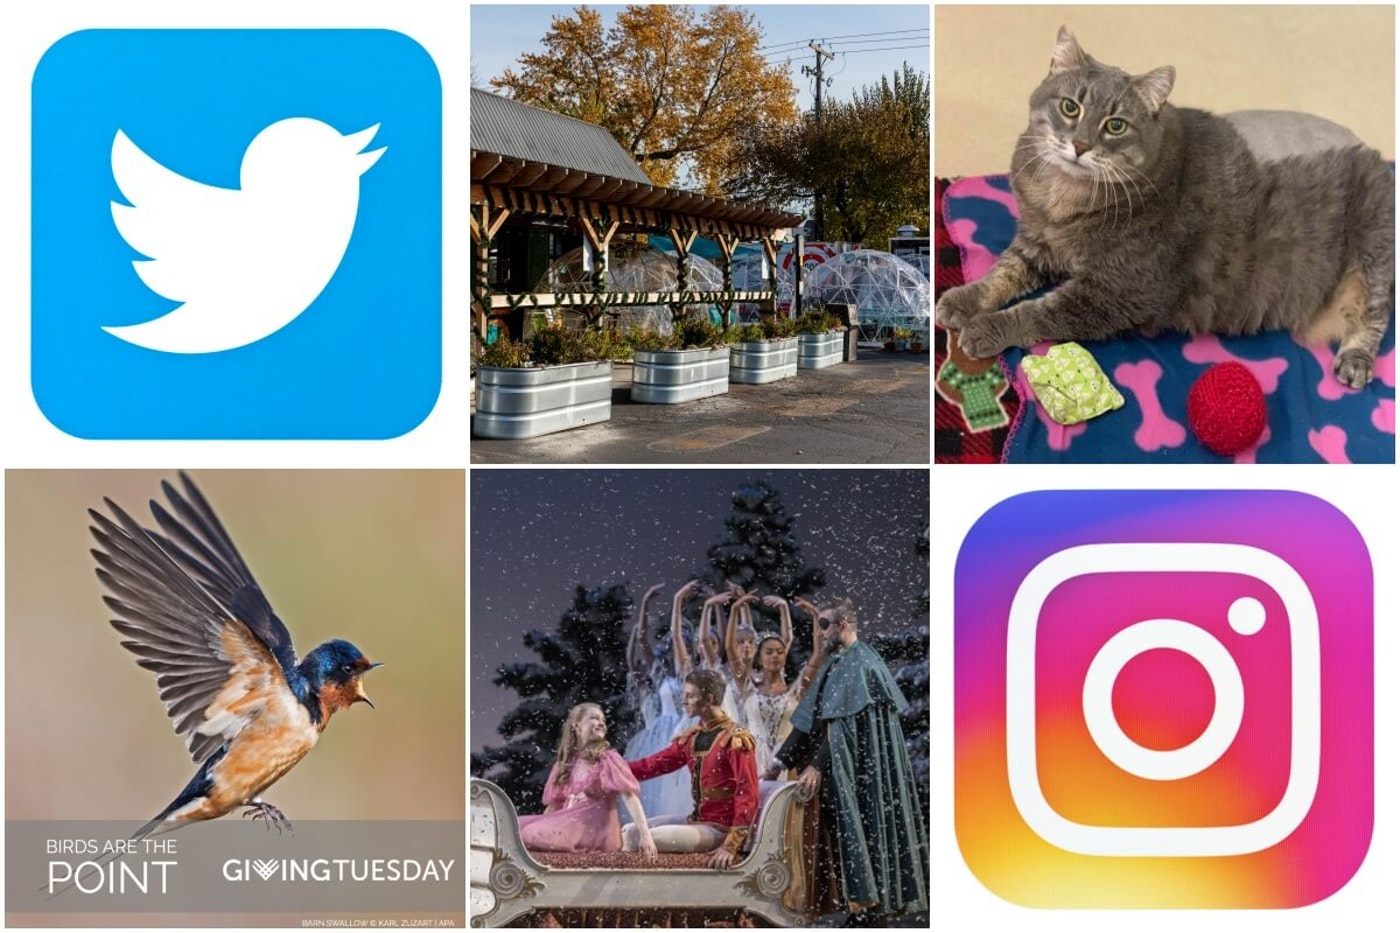 Social media accounts can give Michiganders insight about what's going on around the state, and inspiration to get involved.